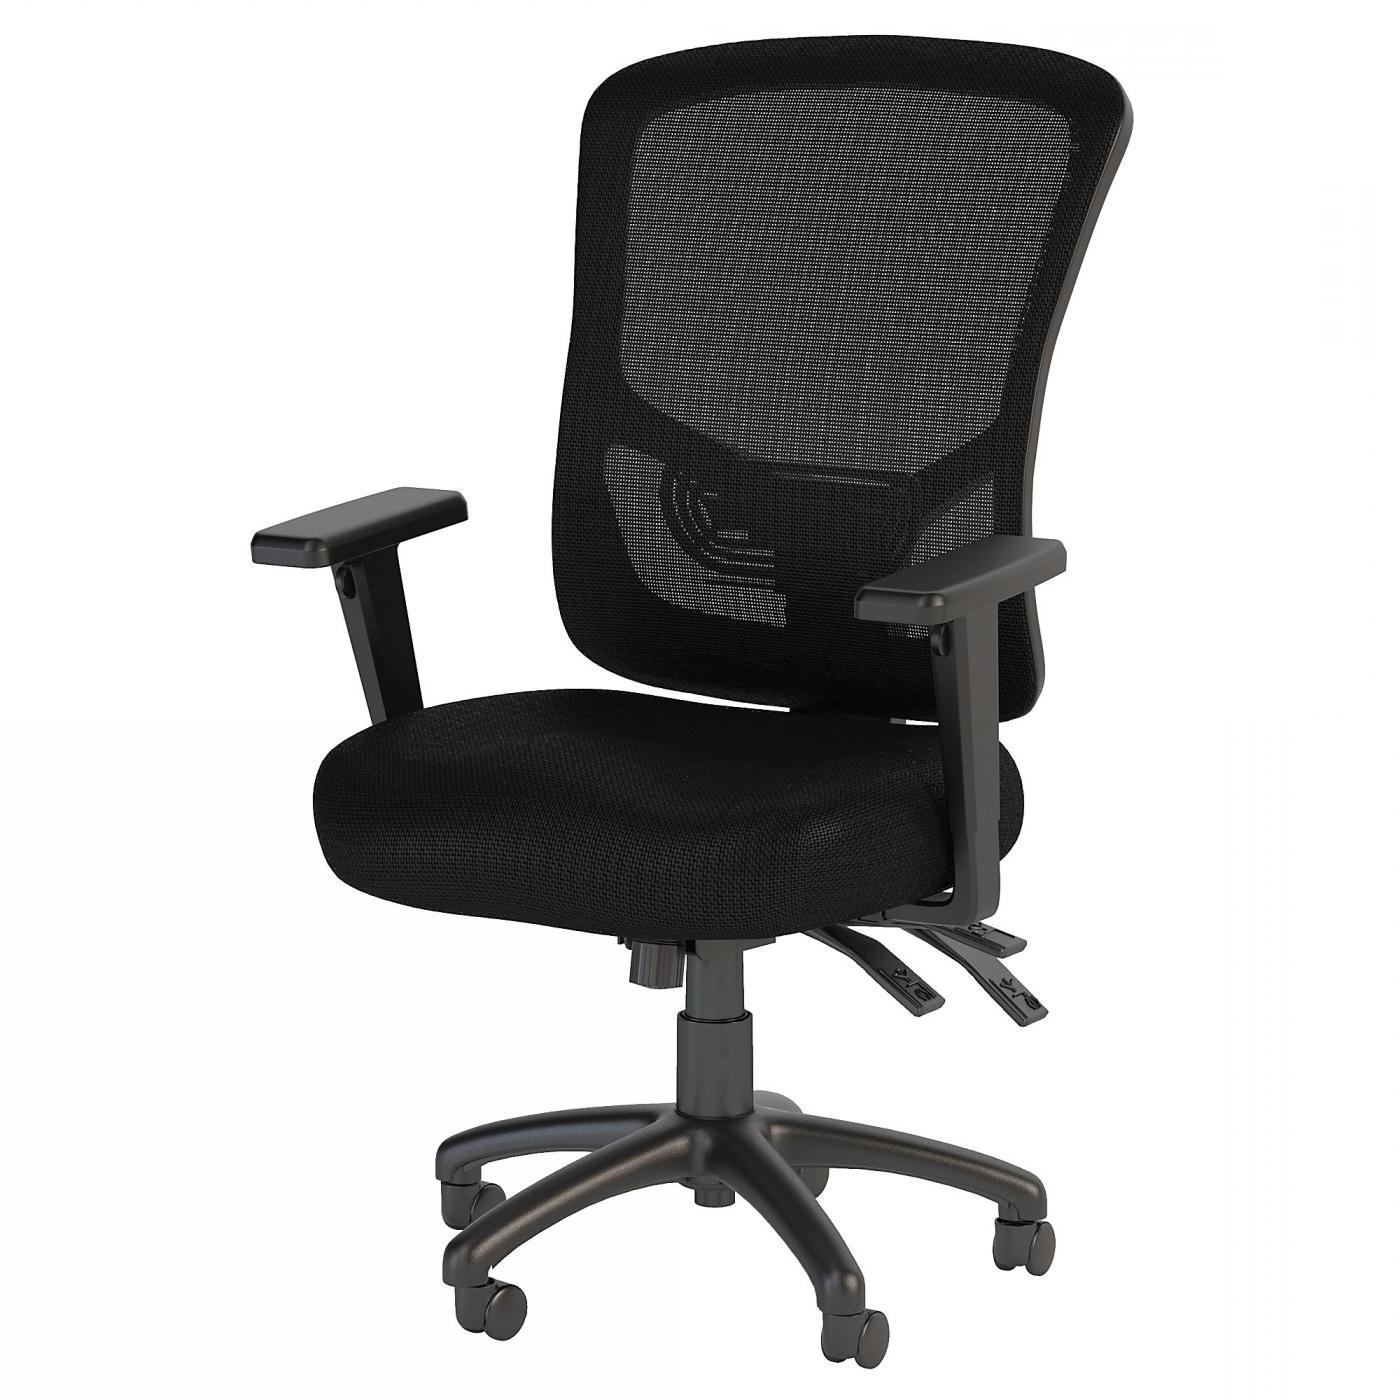 <font color=#c60><b>BUSH BUSINESS FURNITURE CUSTOM COMFORT HIGH BACK MULTIFUNCTION MESH EXECUTIVE OFFICE CHAIR. FREE SHIPPING</font></b> </font></b>